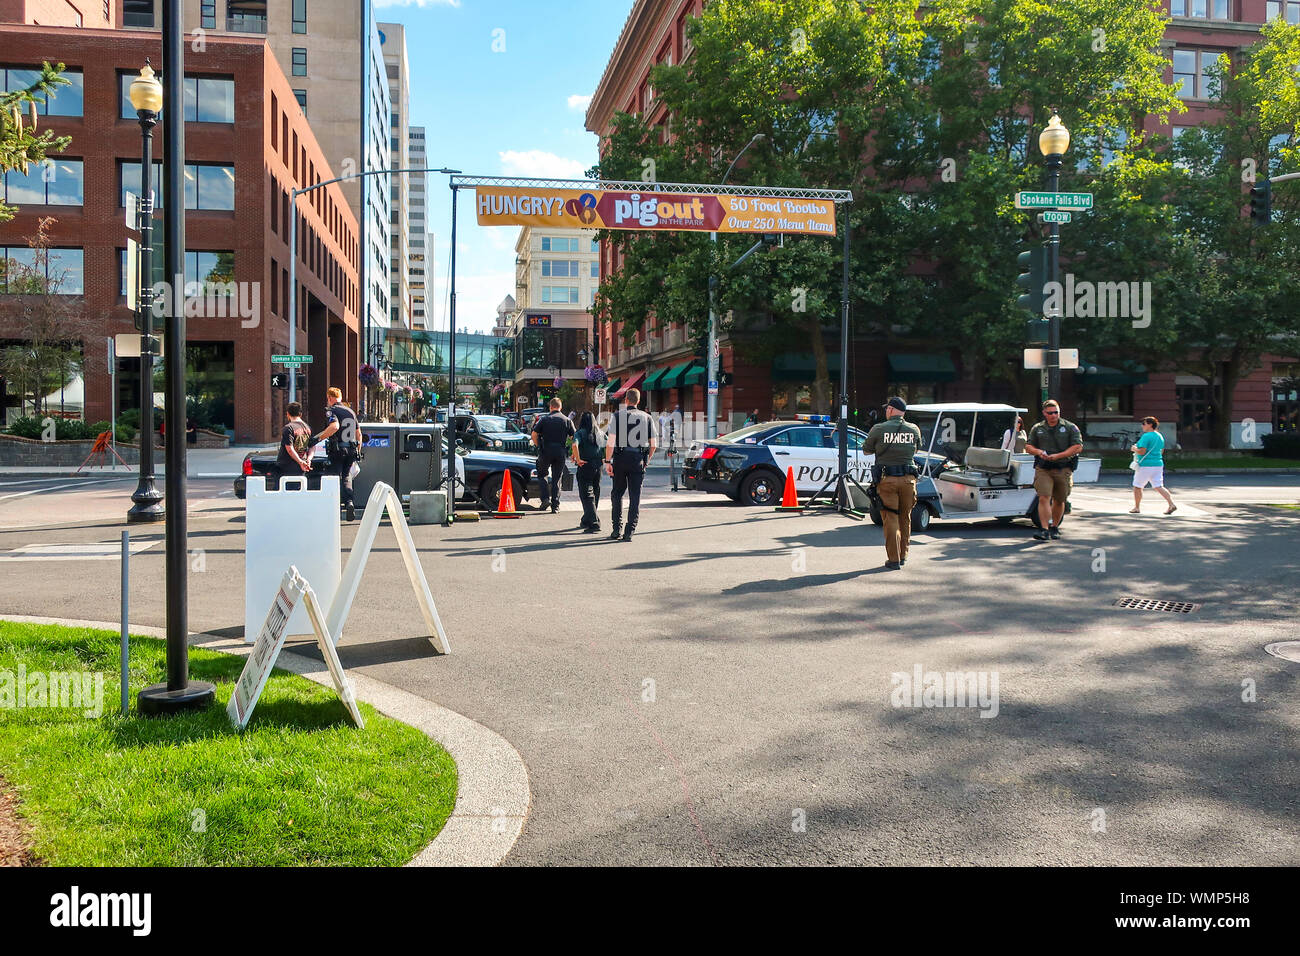 Local police and ranger officers escort a handcuffed suspect through Riverfront Park in the downtown area of Spokane, Washington. Stock Photo